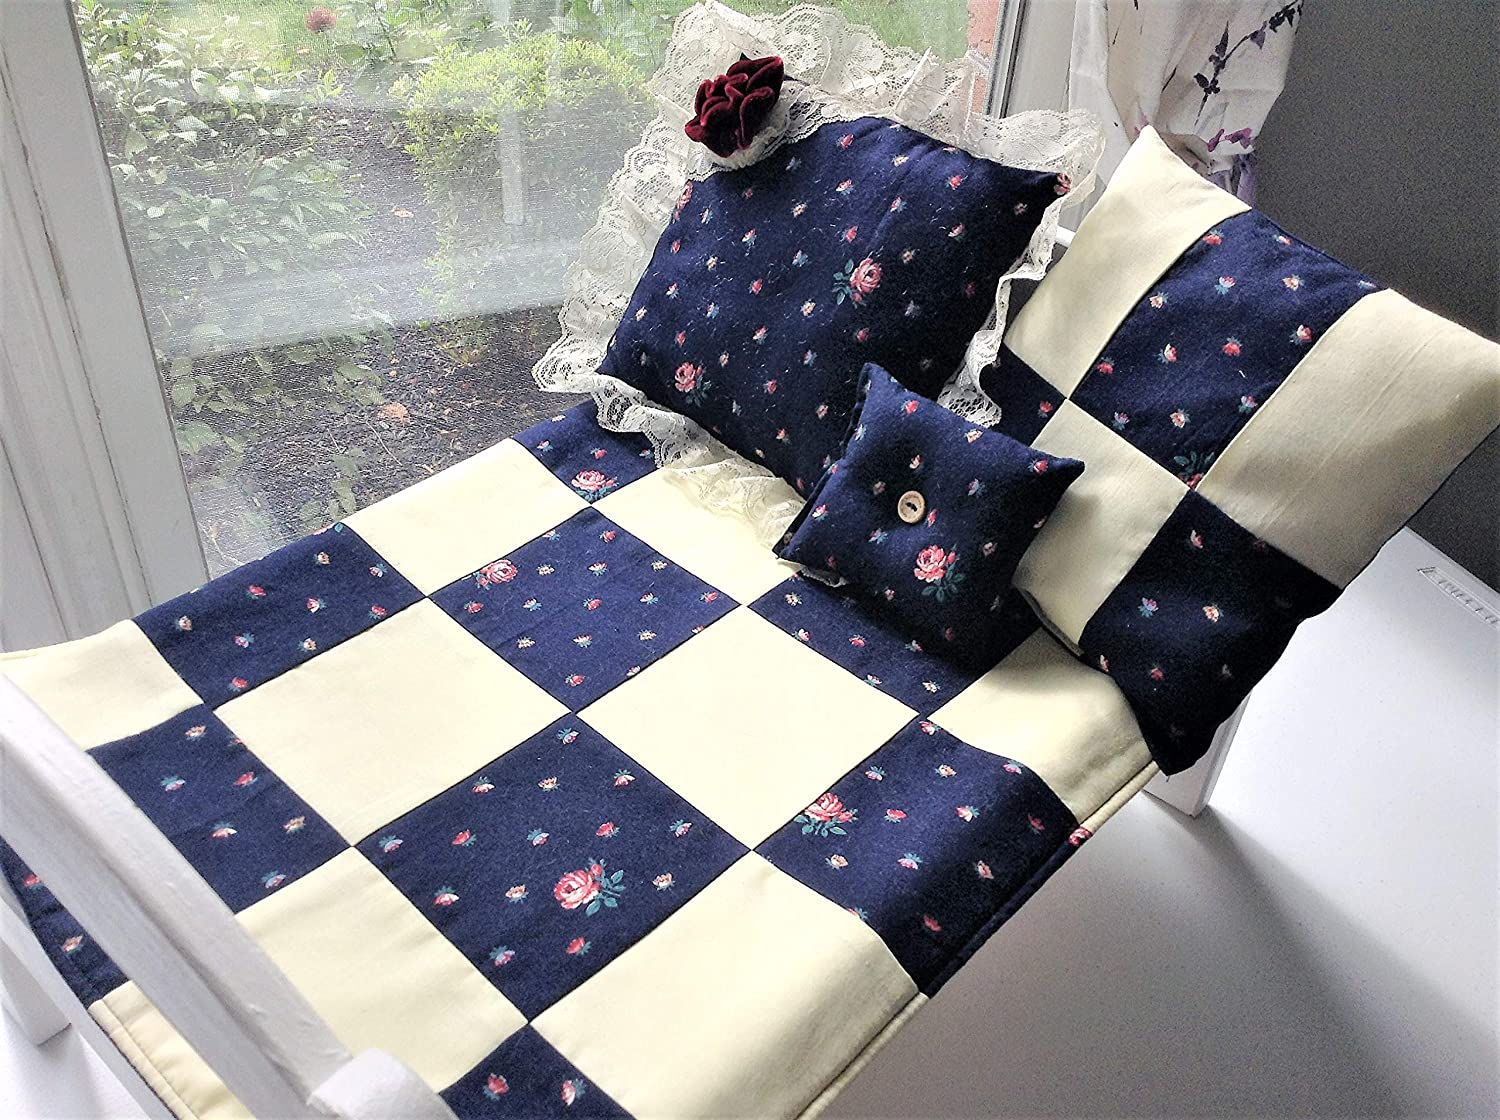 Handmade Patchwork Block Style Quilt Patchwork Quilted Blanket Doll Bedding Set With 3 Pillows Blue Yellow American Girl Bitty Baby Crib